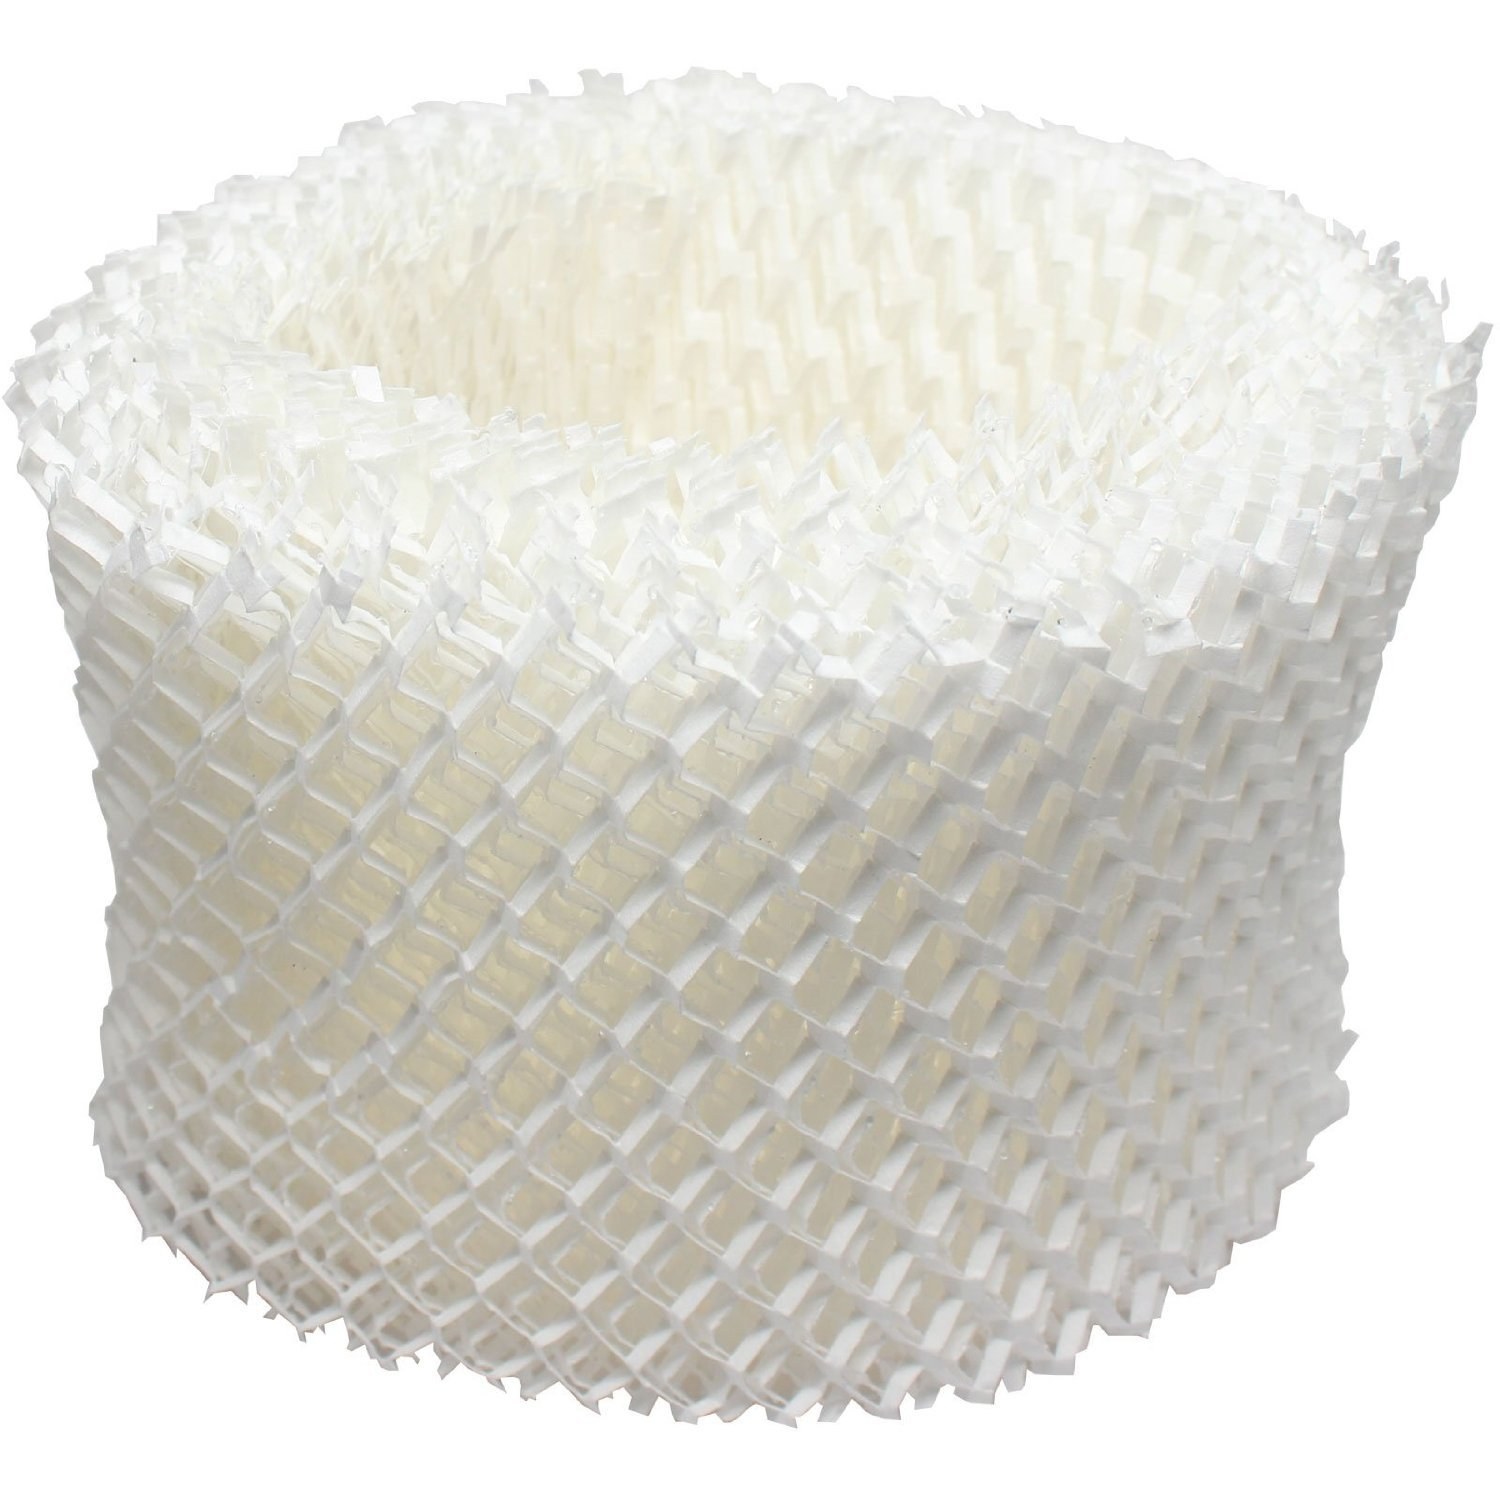 Honeywell HAC-504 Humidifier Filter Aftermarket